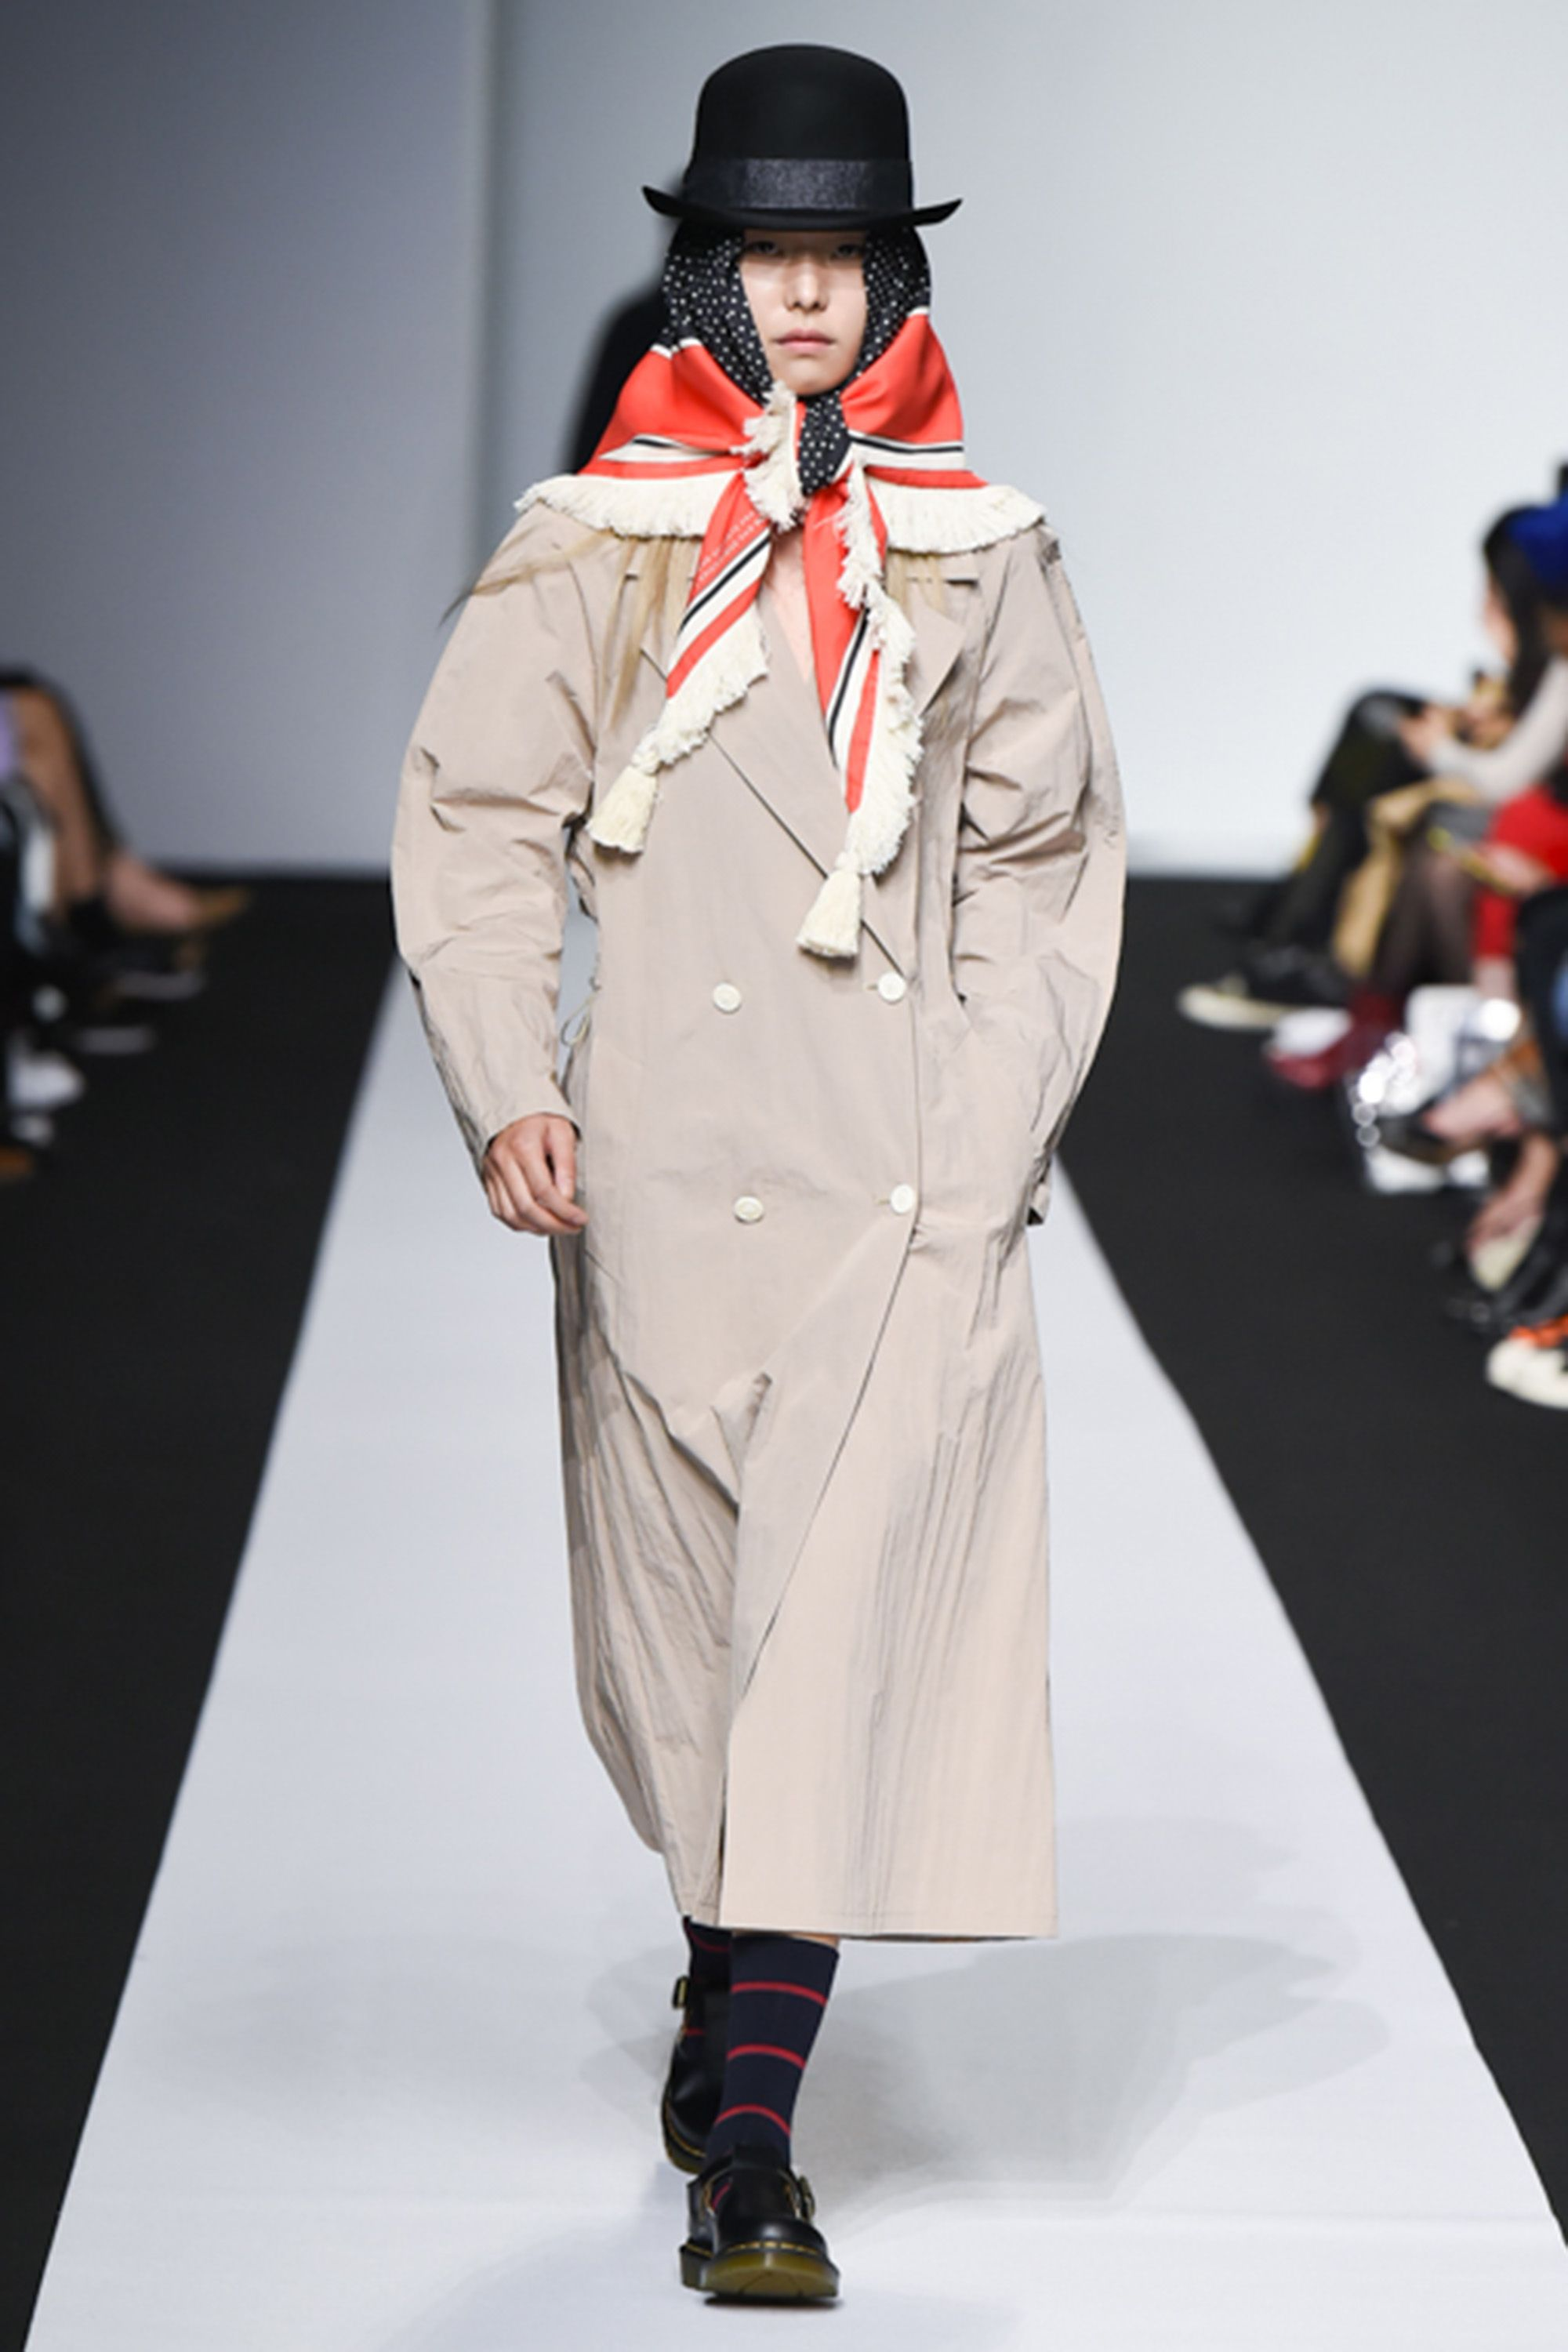 Seoul Fashion Week spring/summer 2019